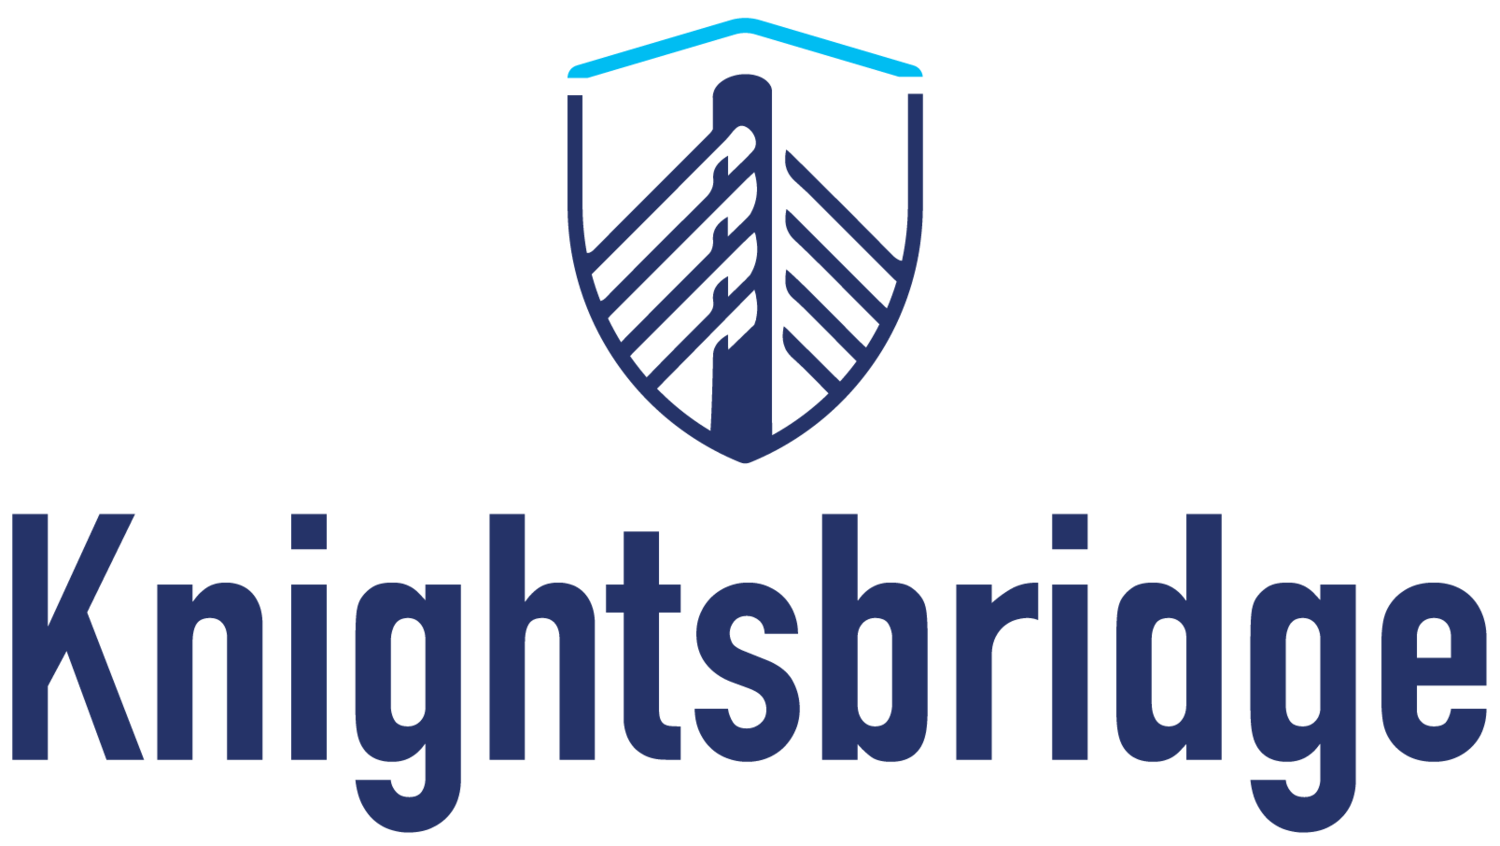 Knightsbridge Advisers, LLC.  |  A U.S. Early Stage Venture Capital Platform